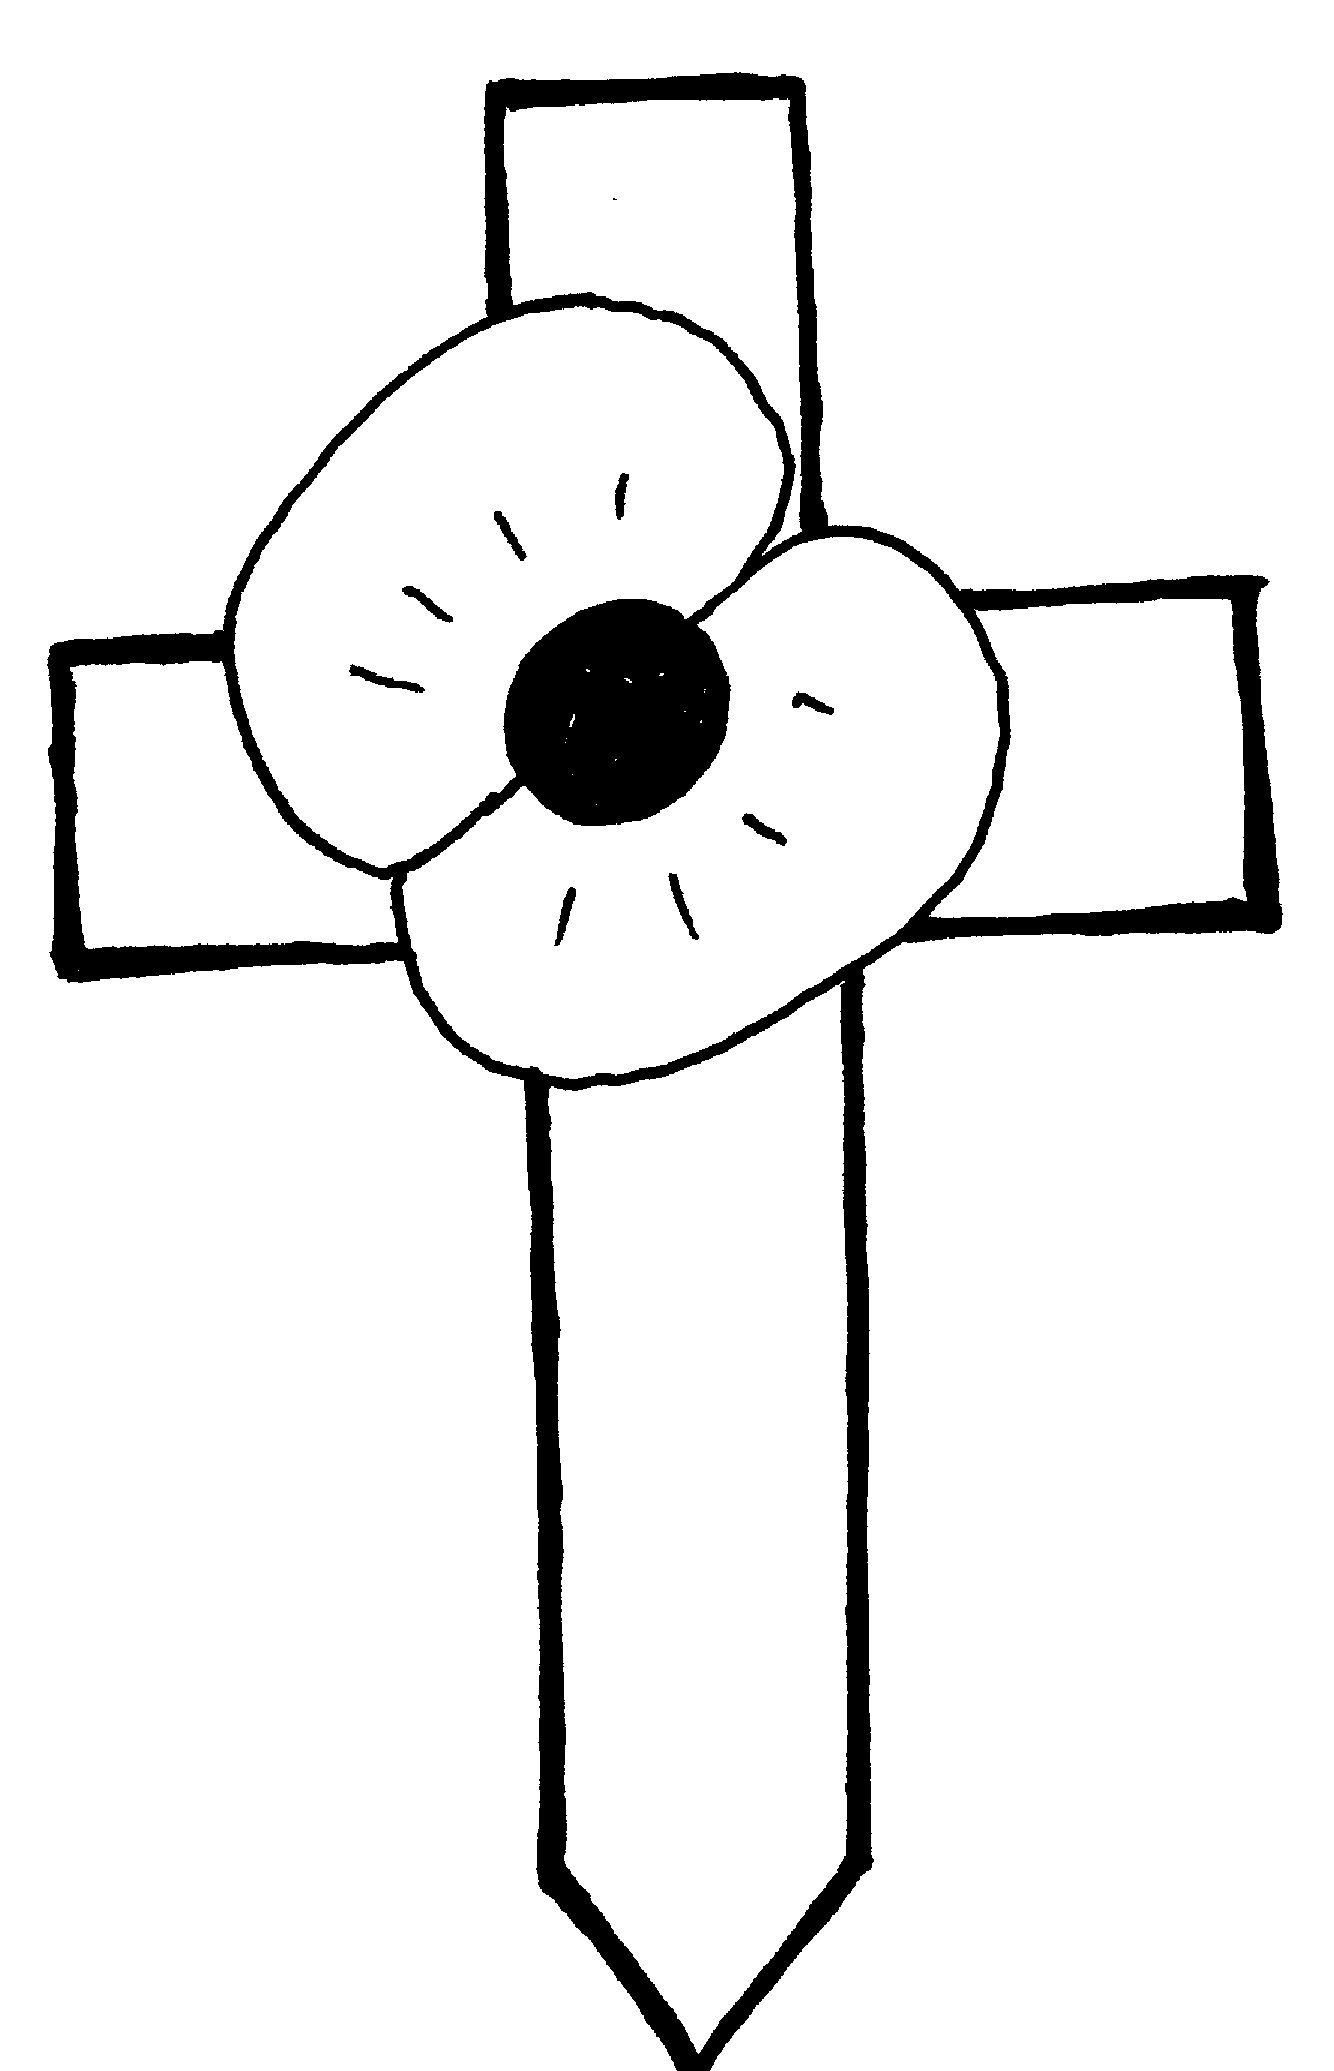 37 awesome memorial day poppy clipart [ 1334 x 2071 Pixel ]